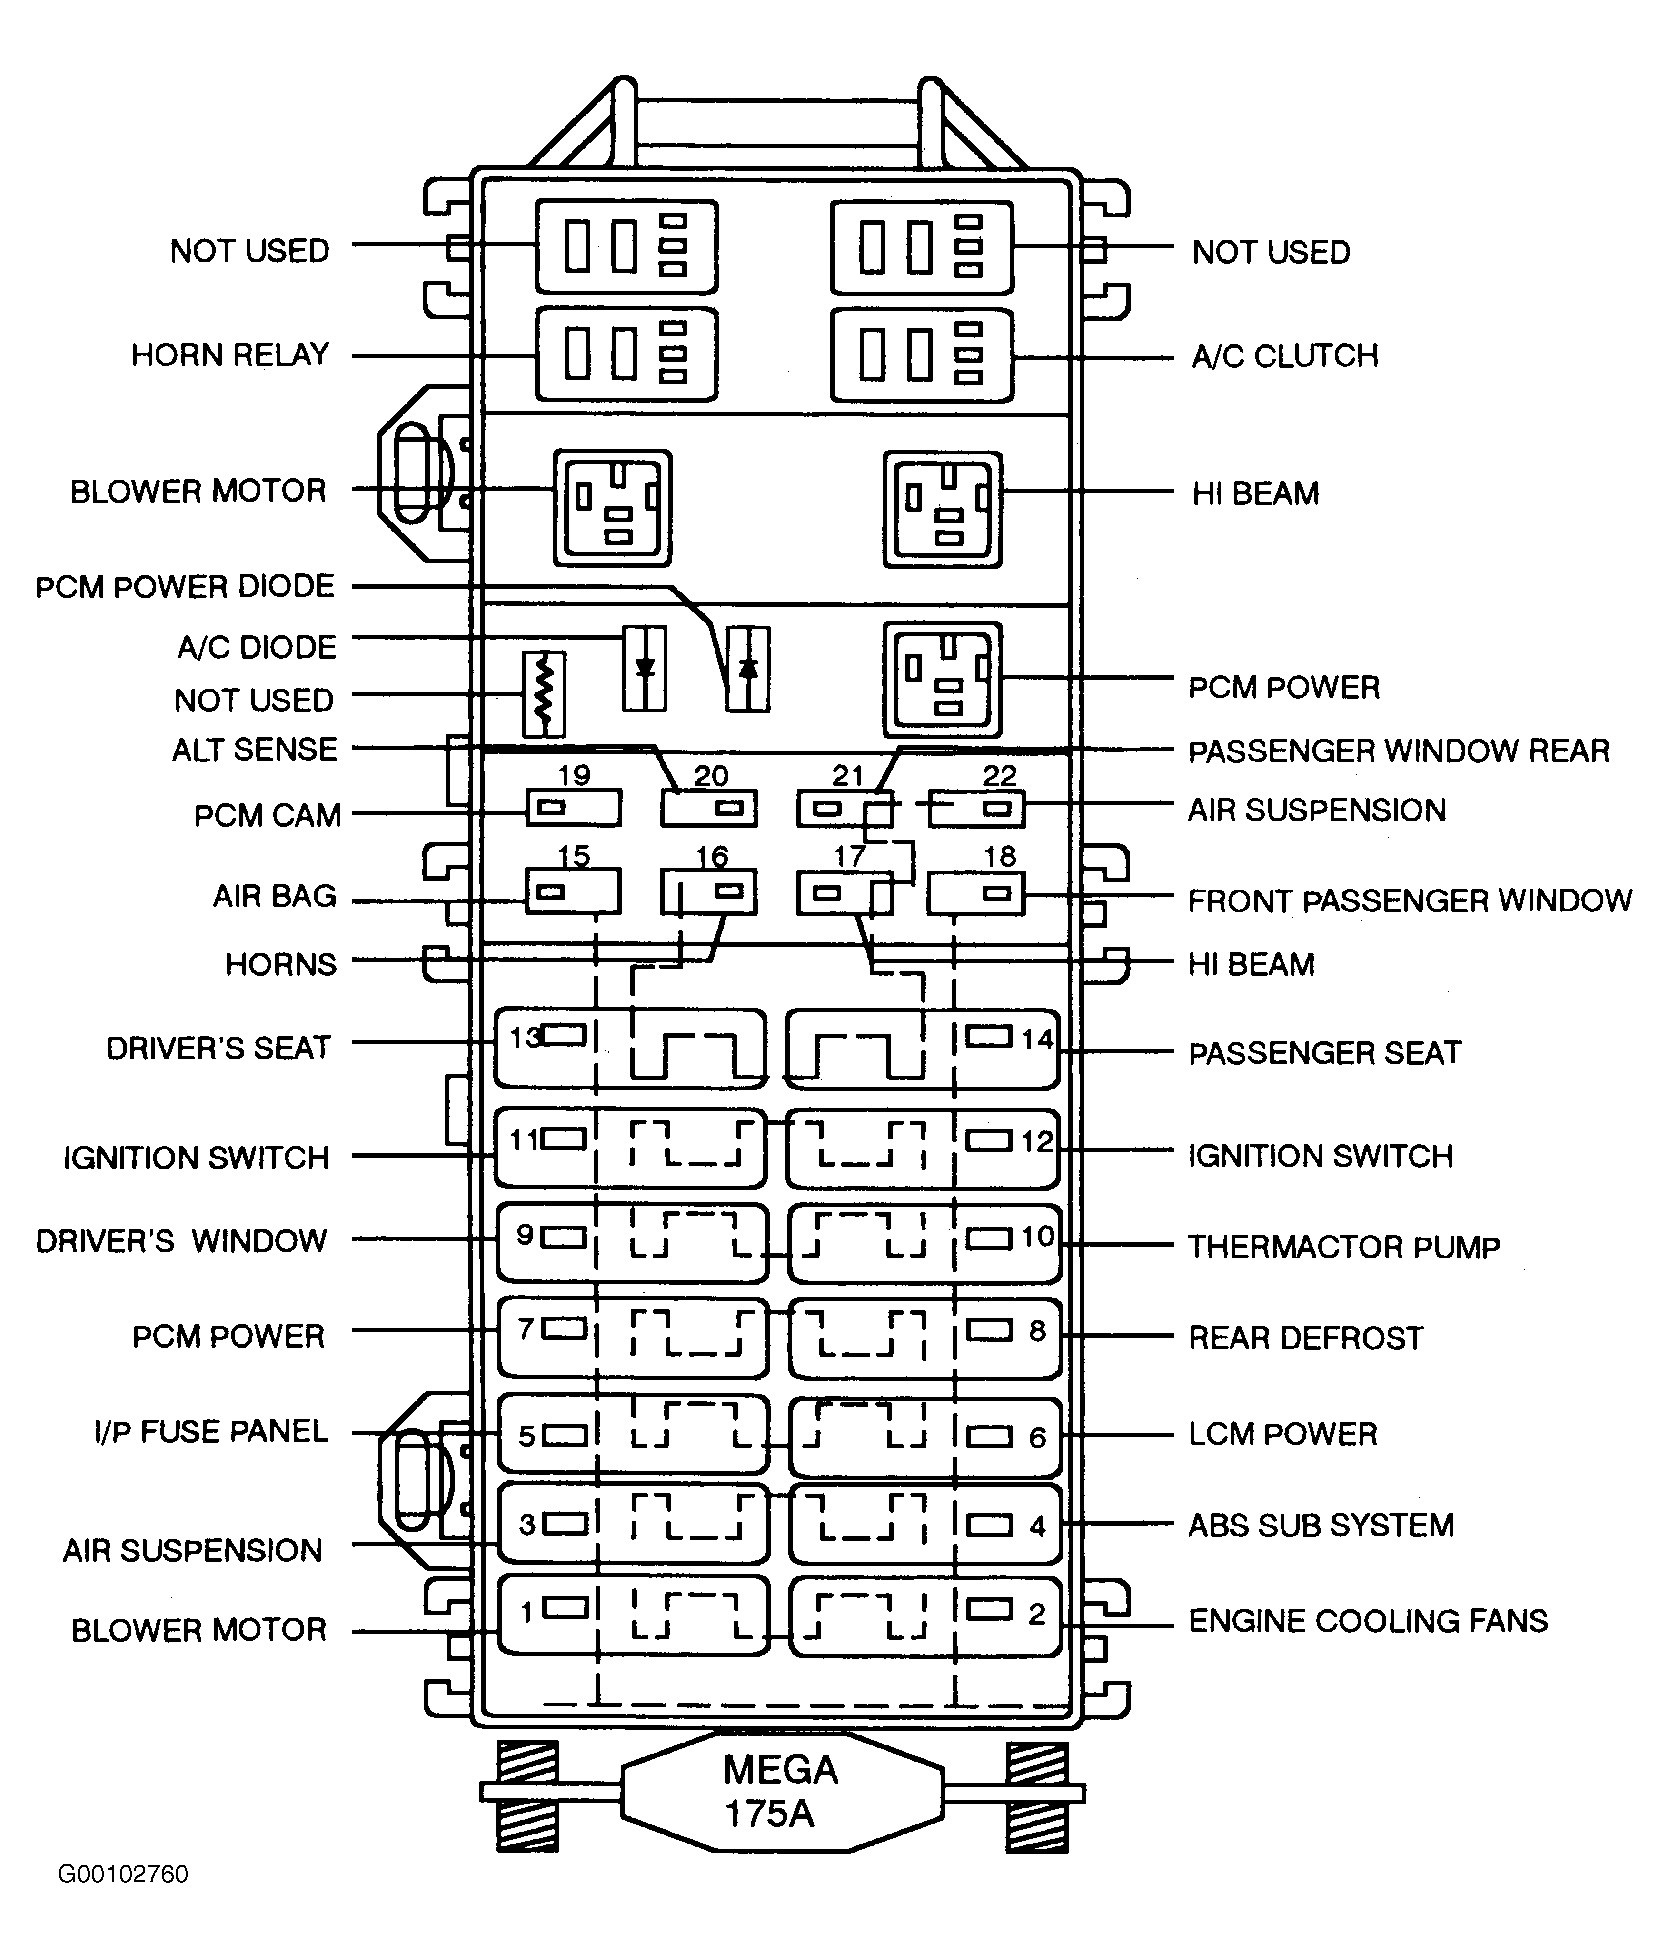 Electric Breaker Box Wiring Diagram